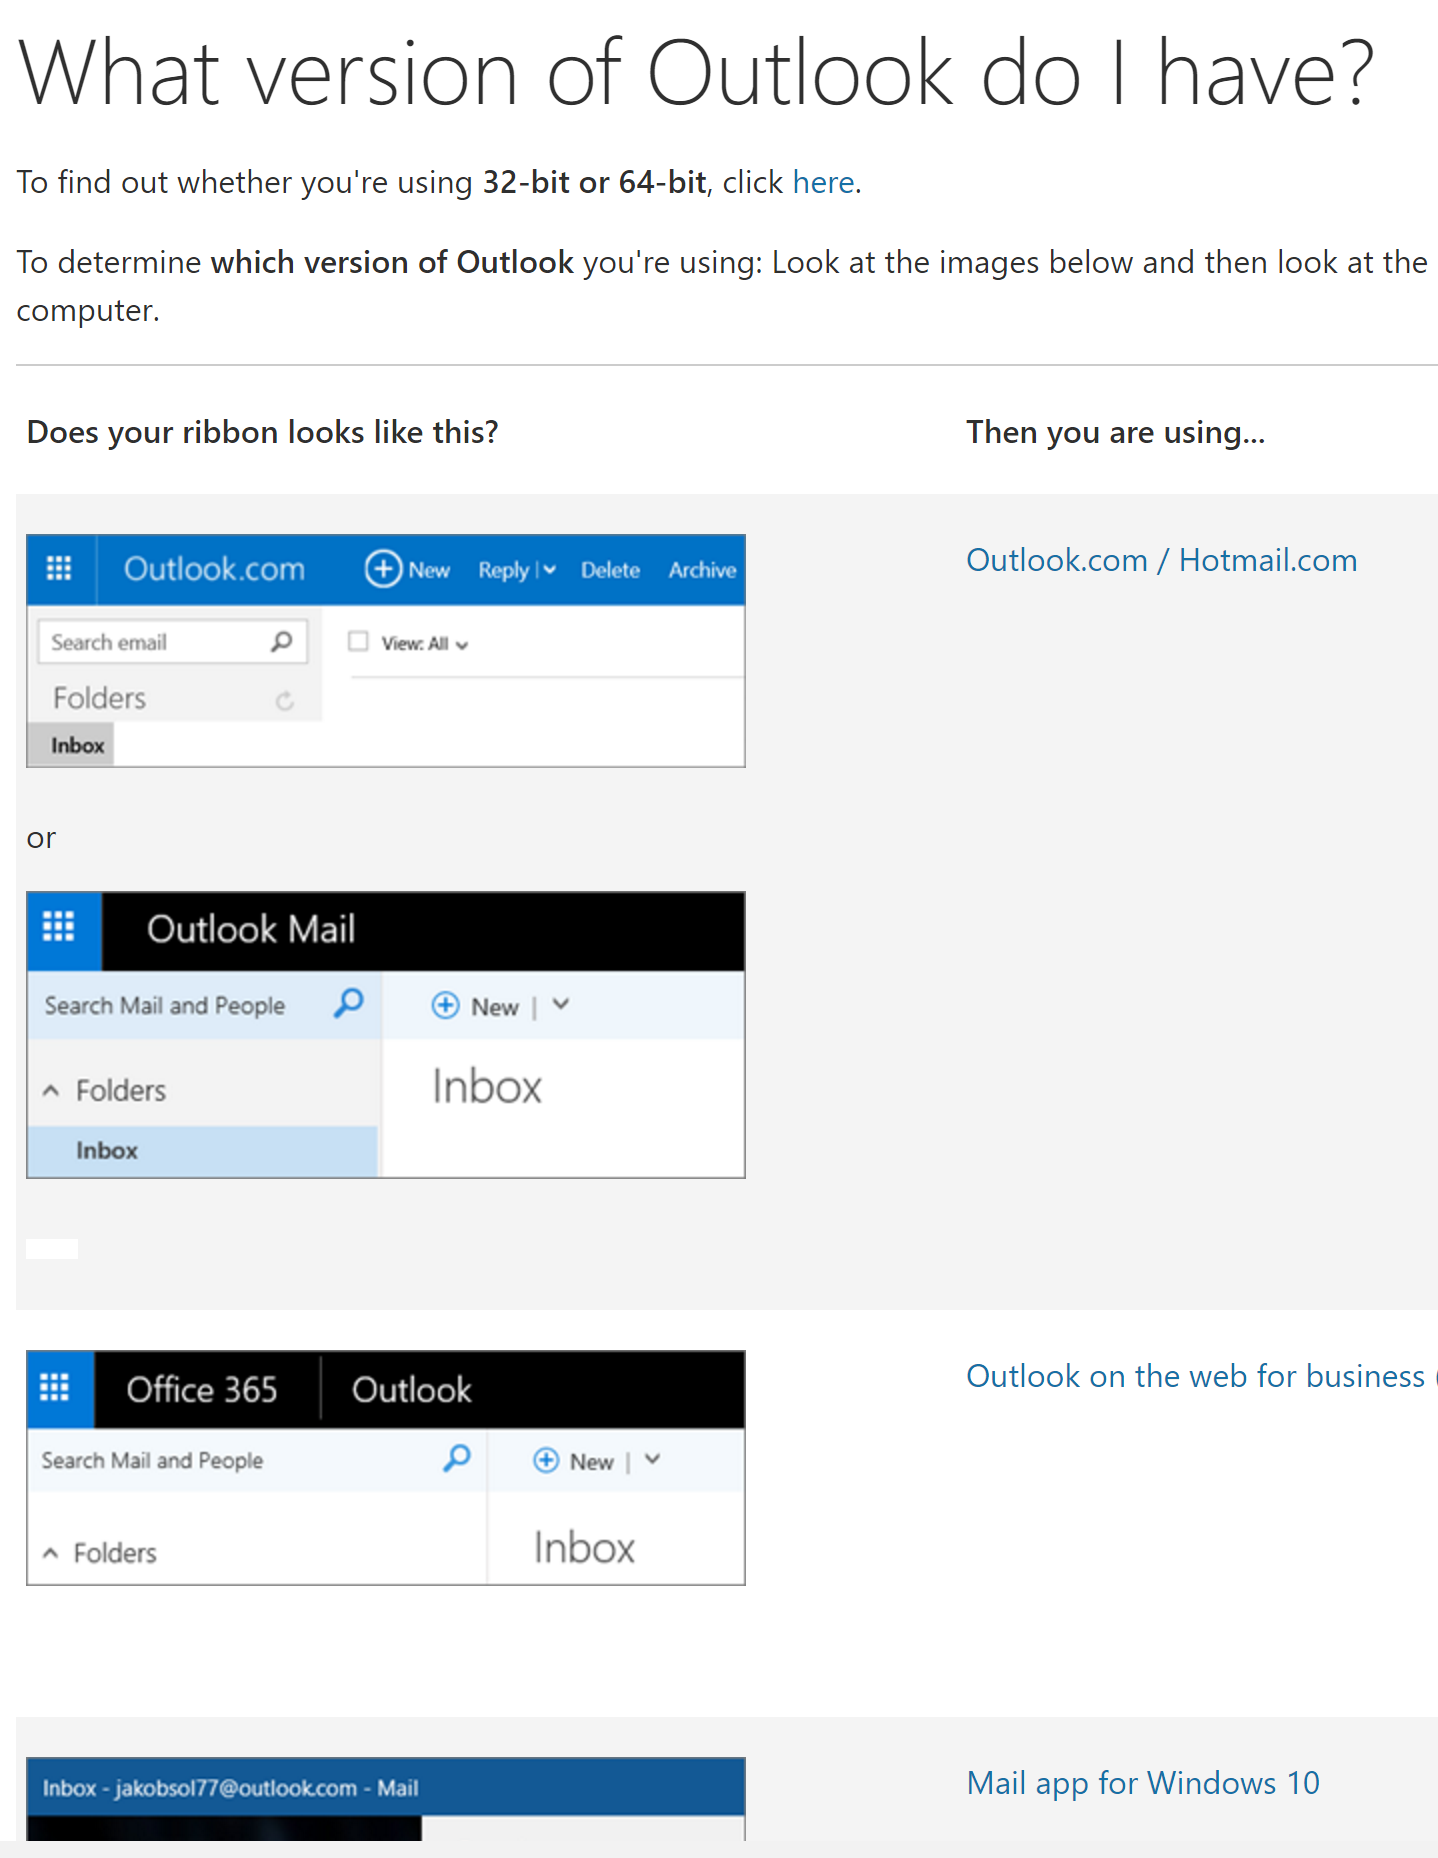 Visual Field Guide To Outlook Versions